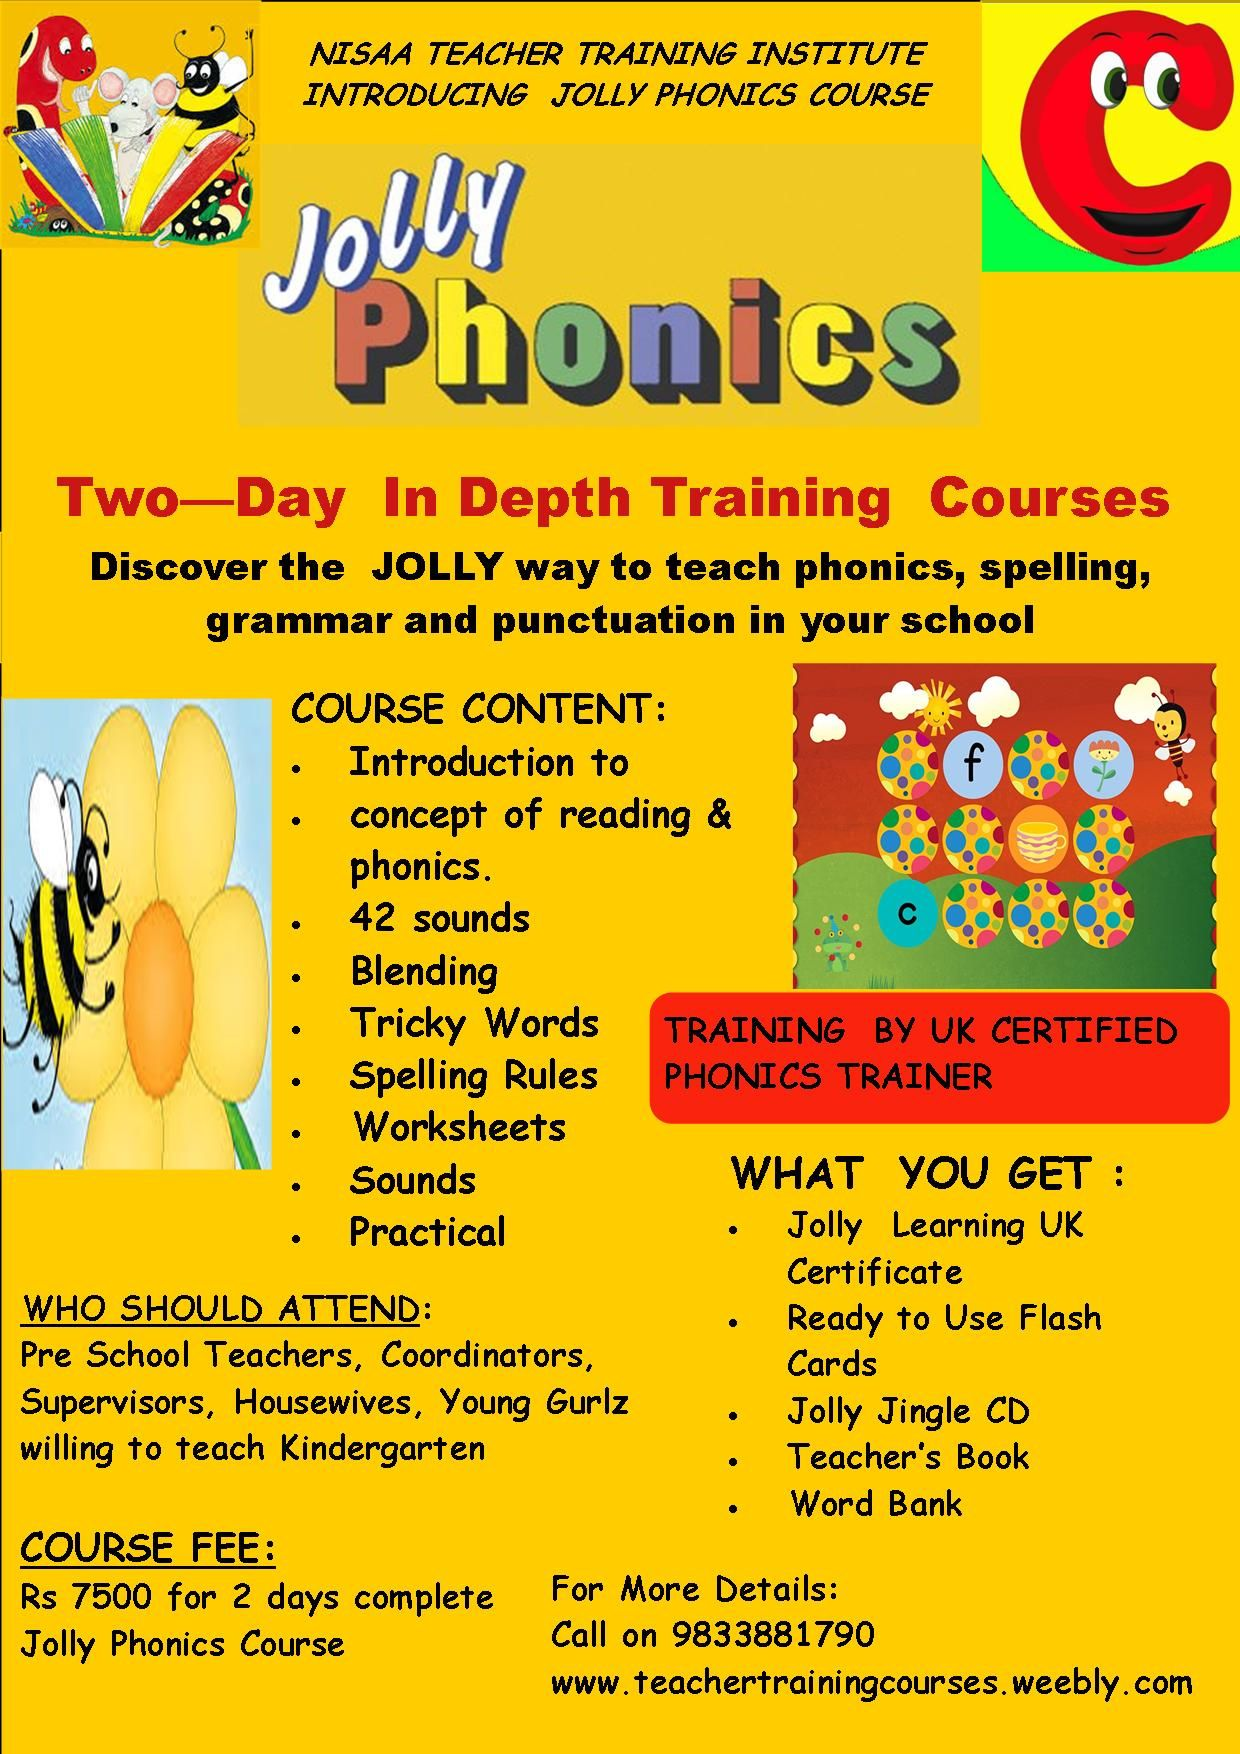 How To Become Jolly Phonics Trainer